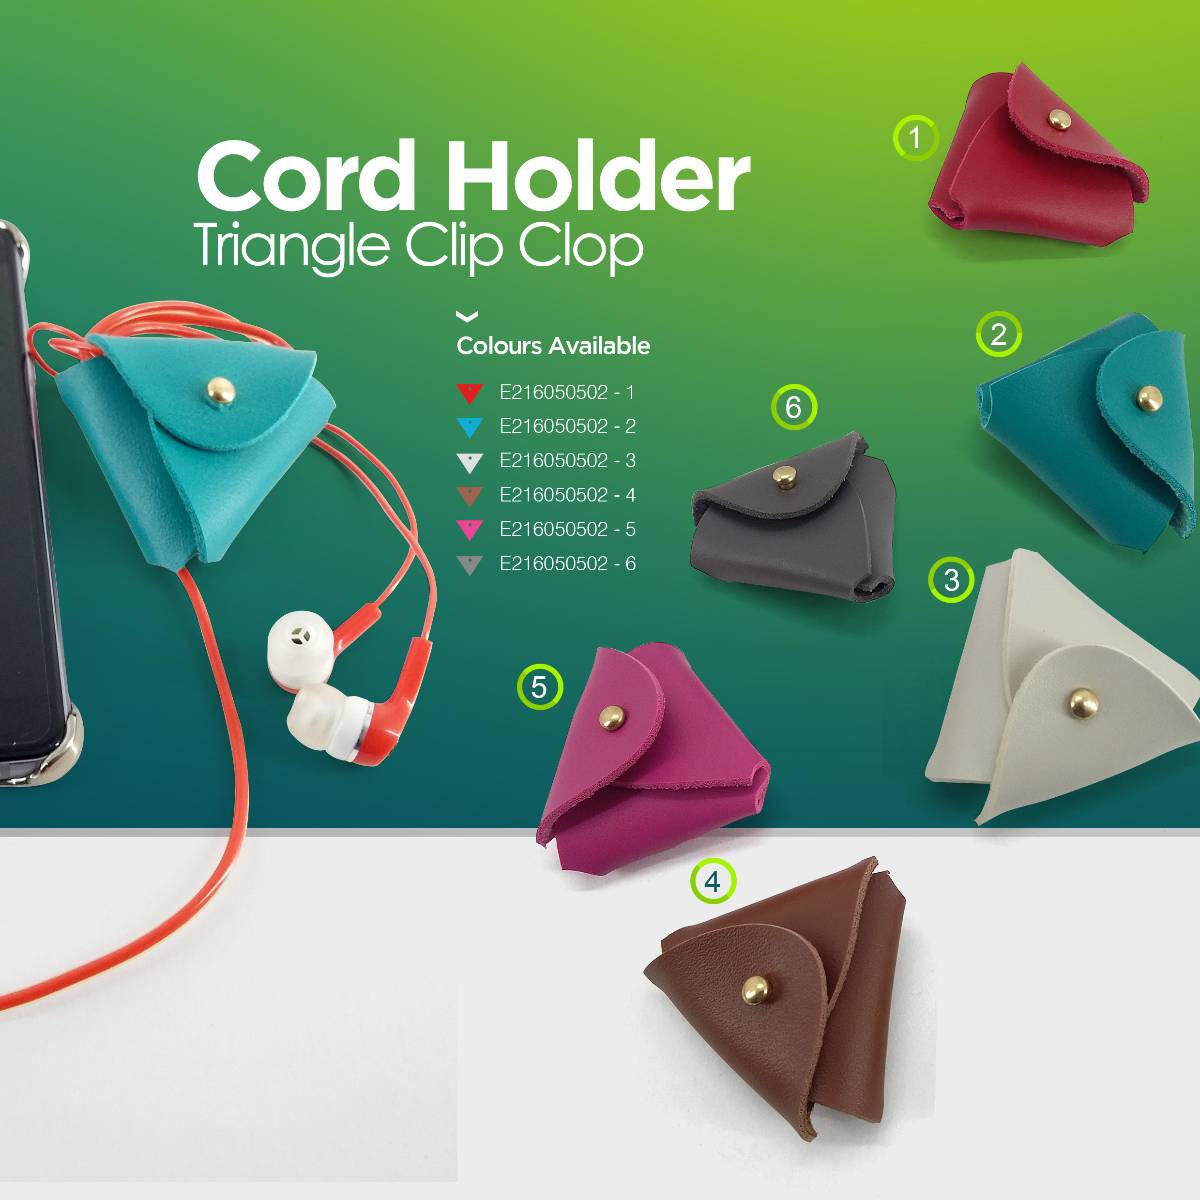 Cord Holder Triangle